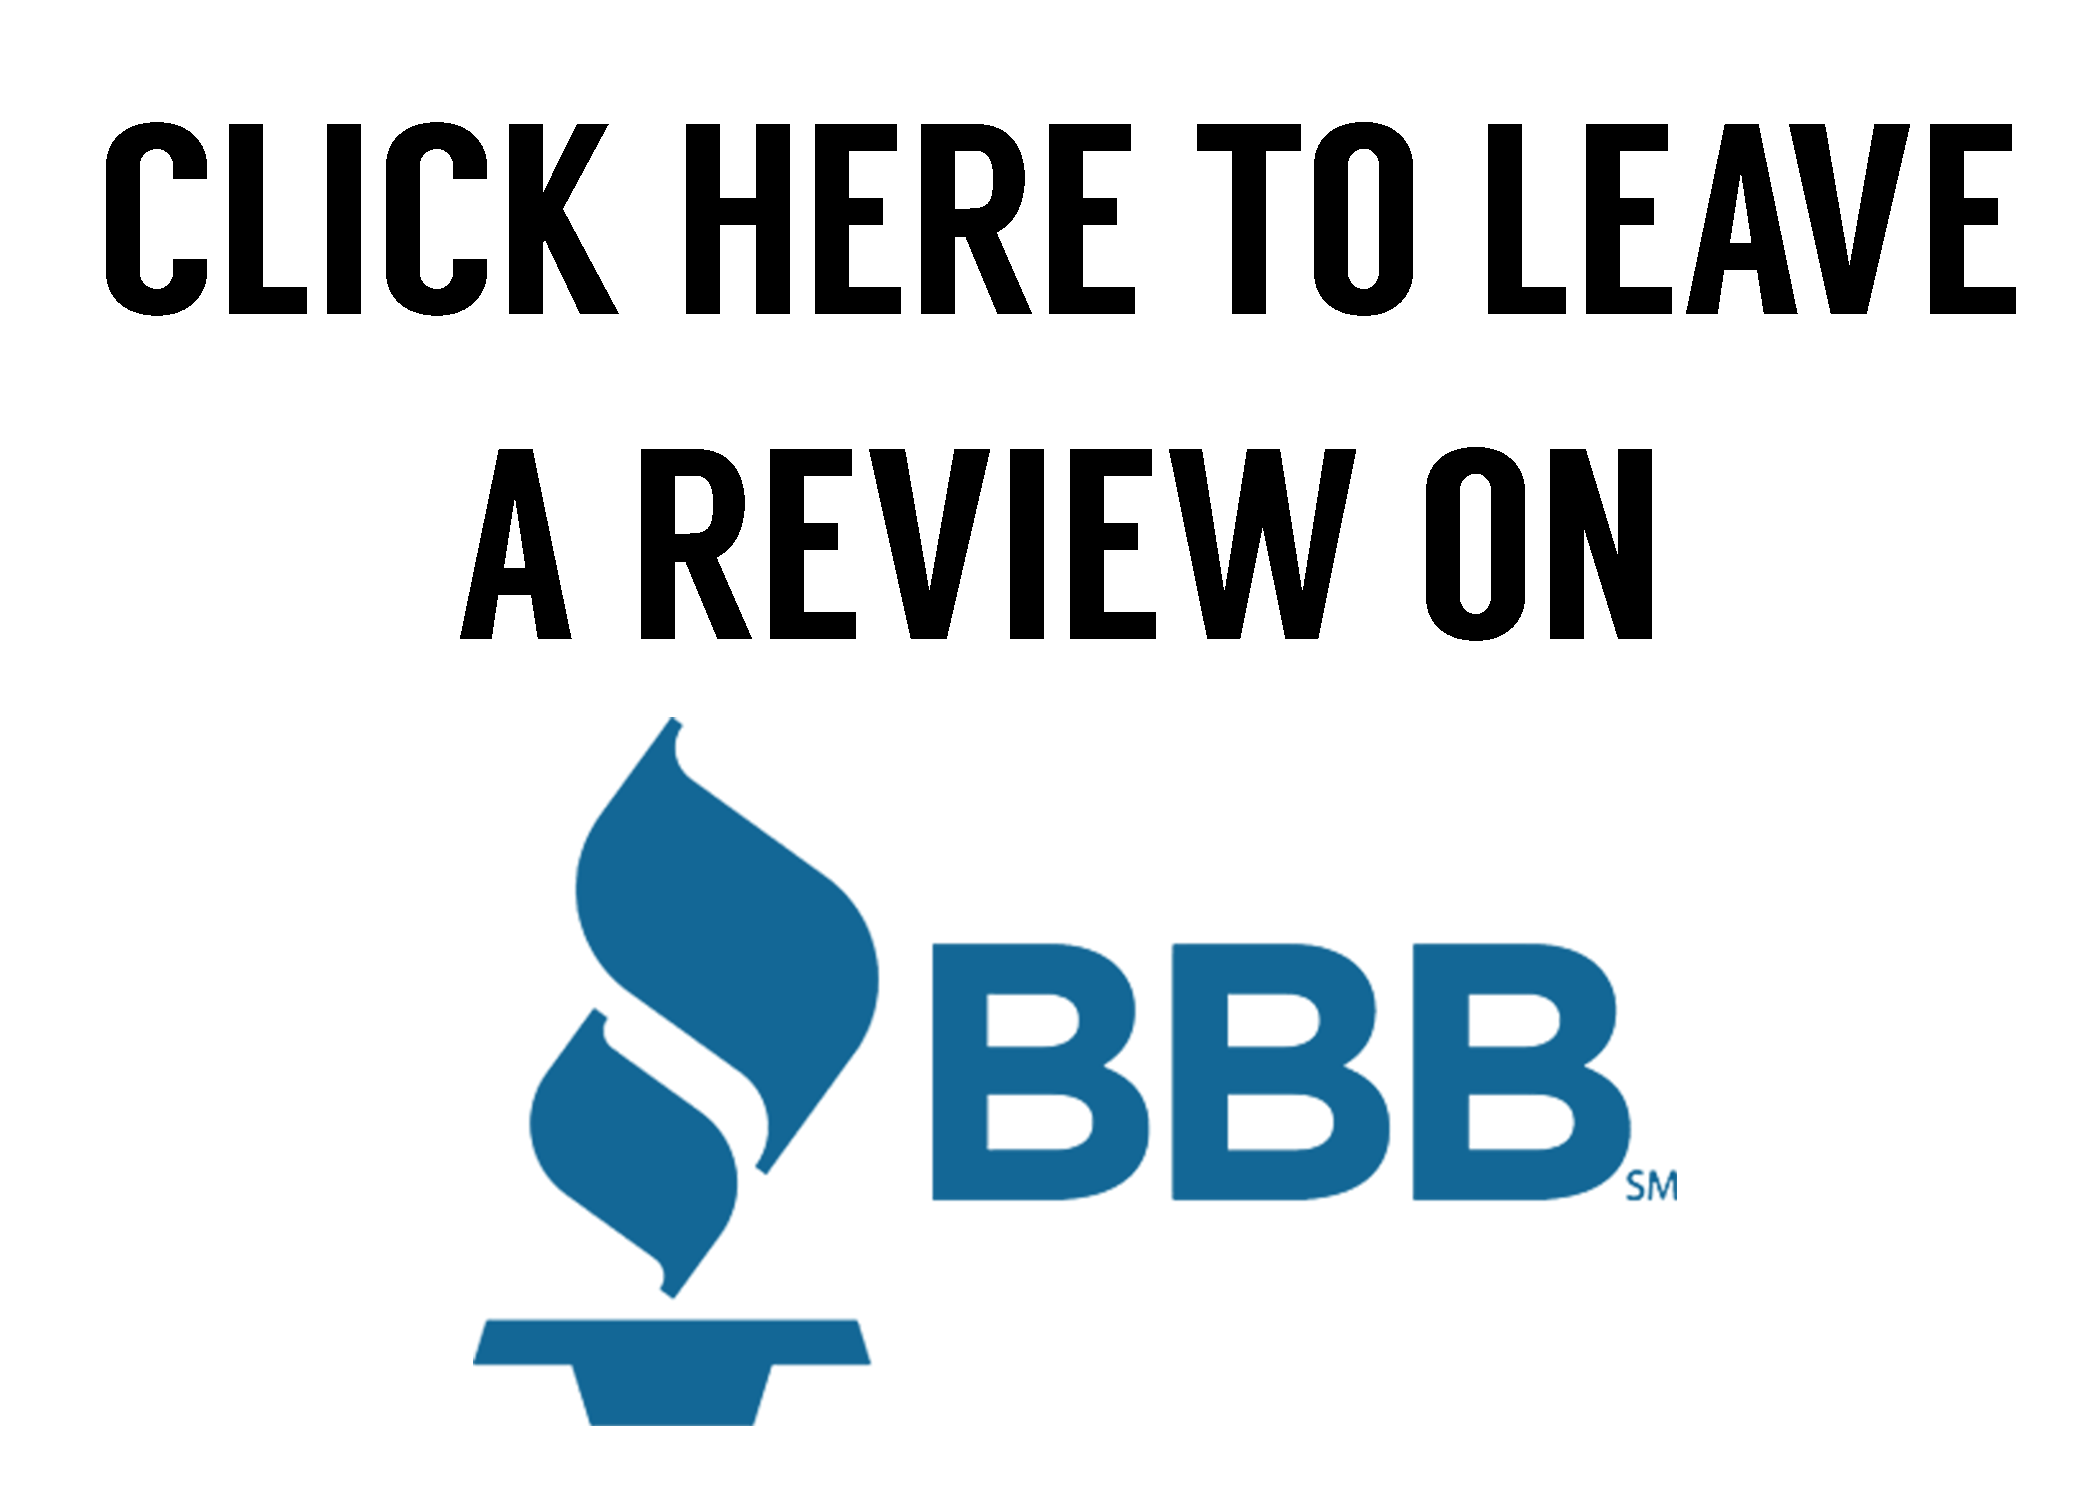 bbb review.png